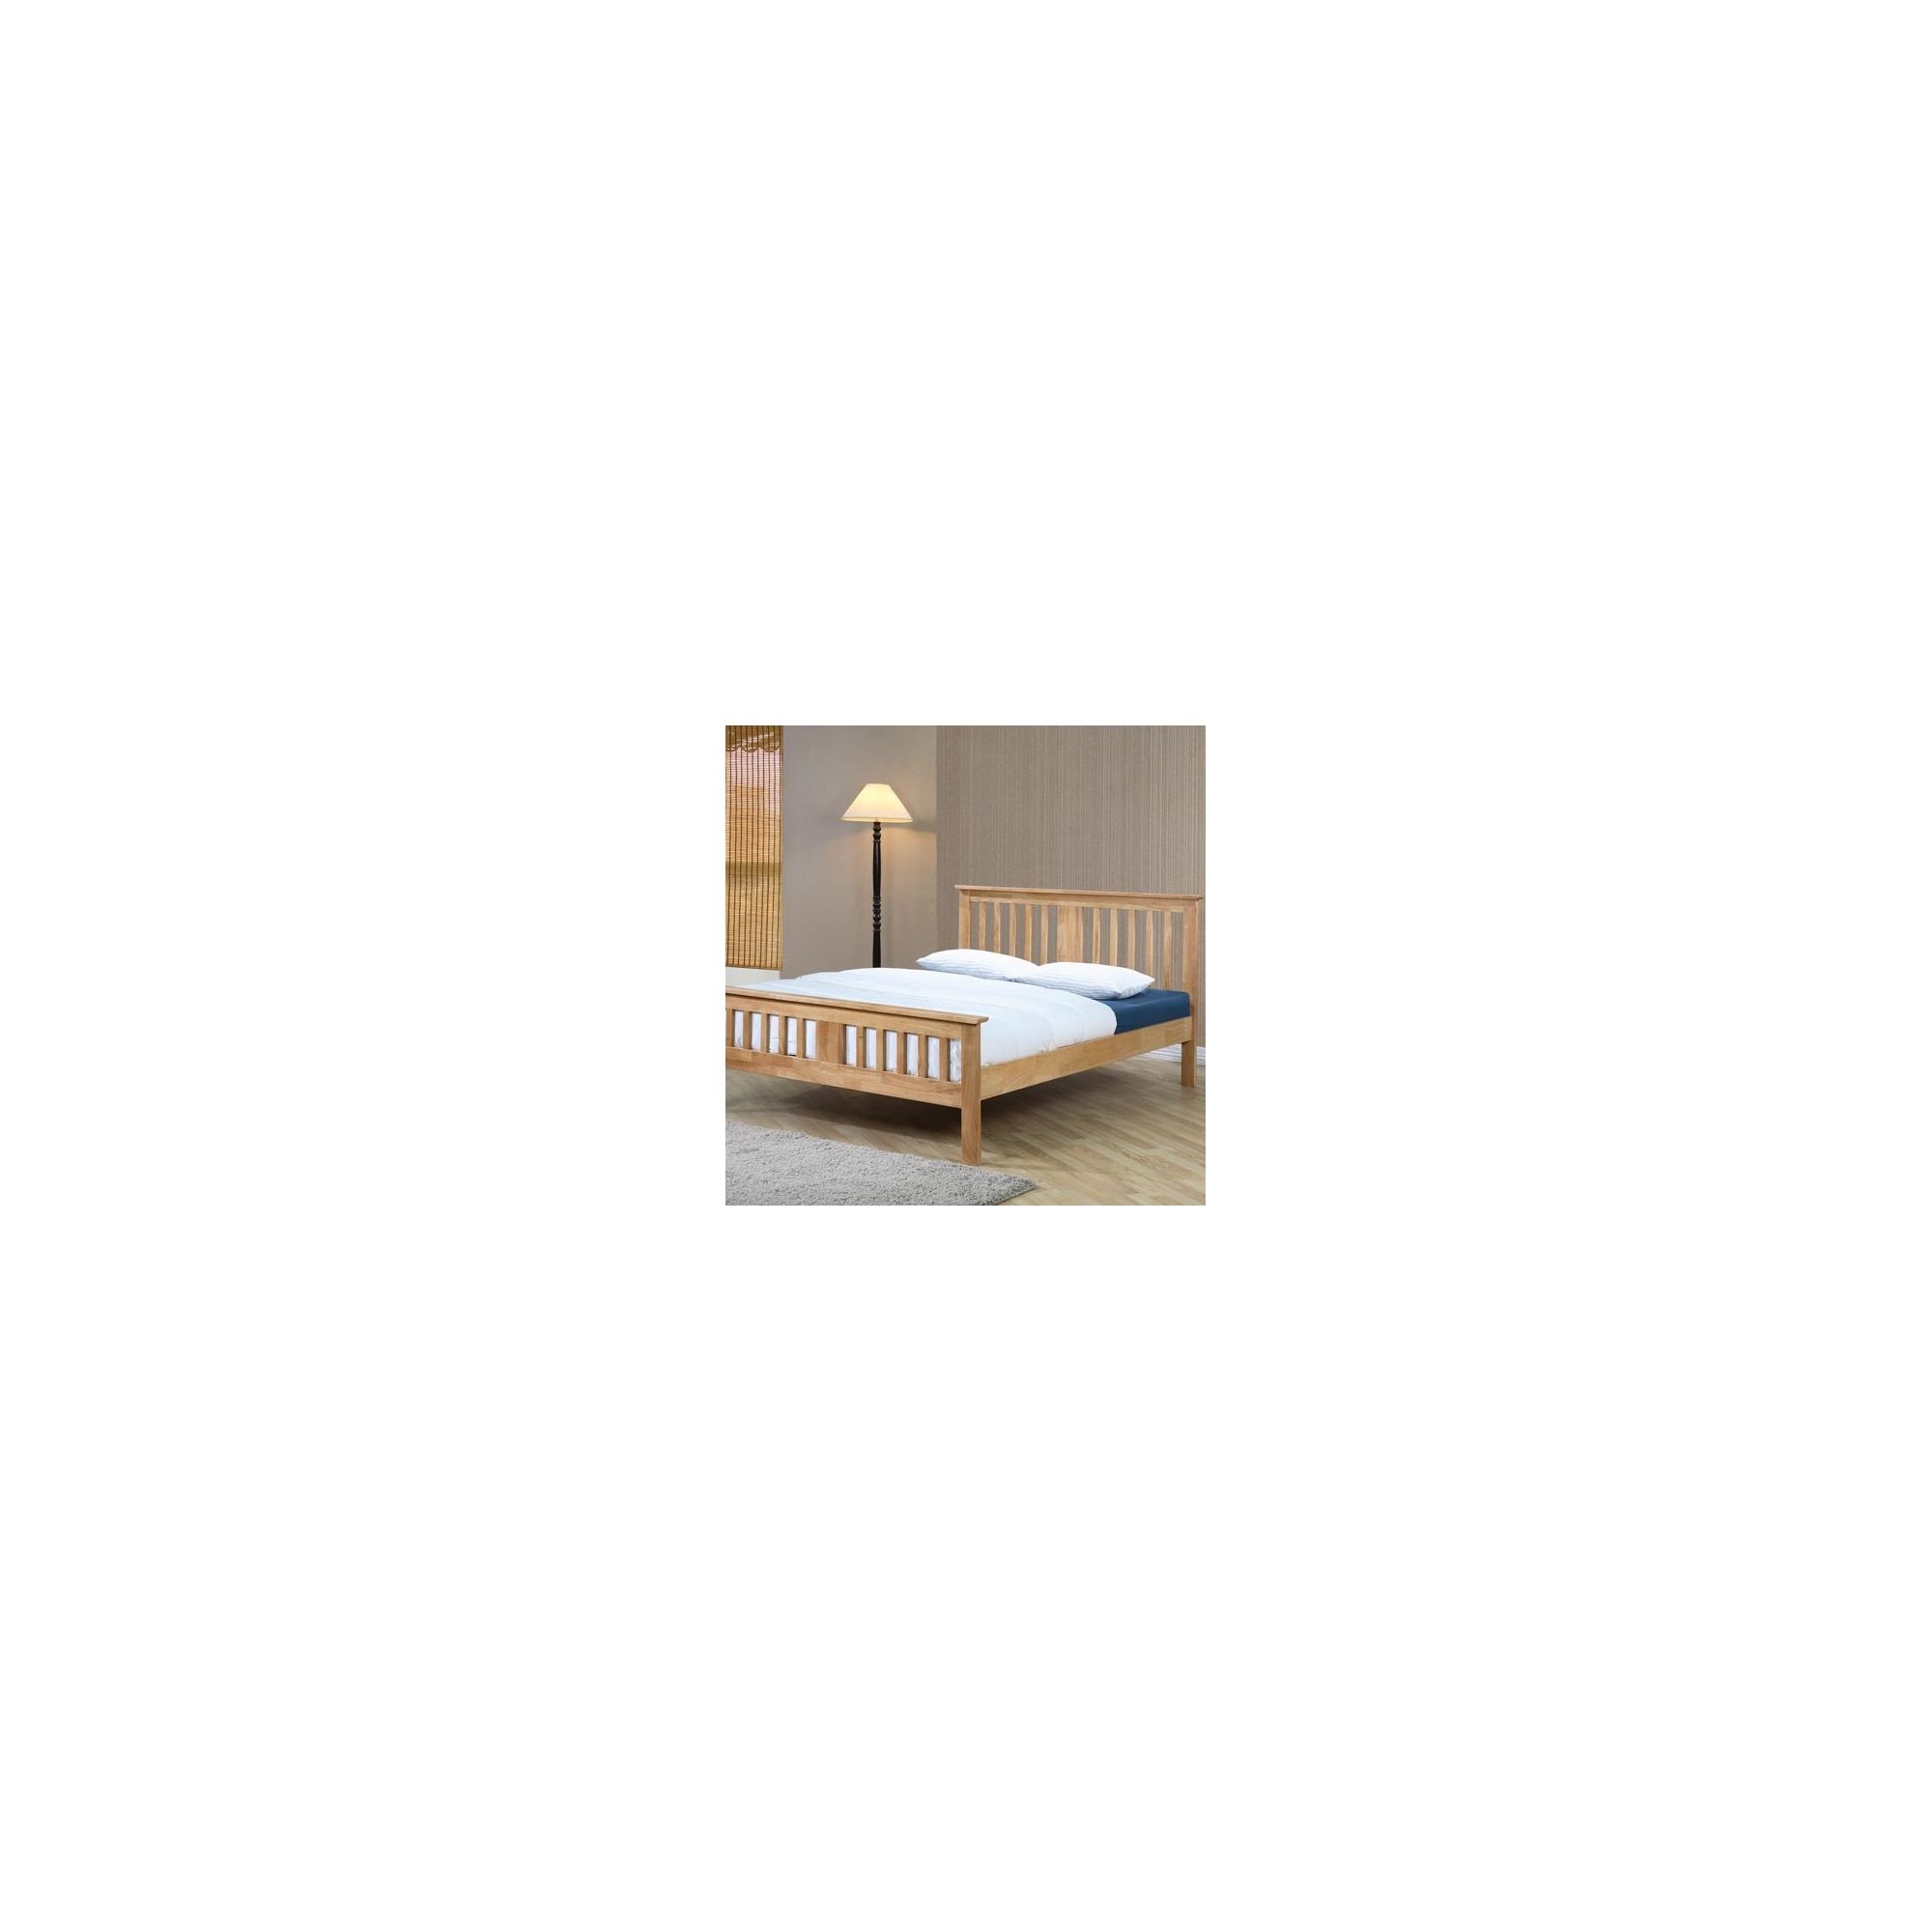 Sleepy Valley Brent Bed - Small Double - Oak - 2 Underbed Drawers/Hardwood at Tesco Direct